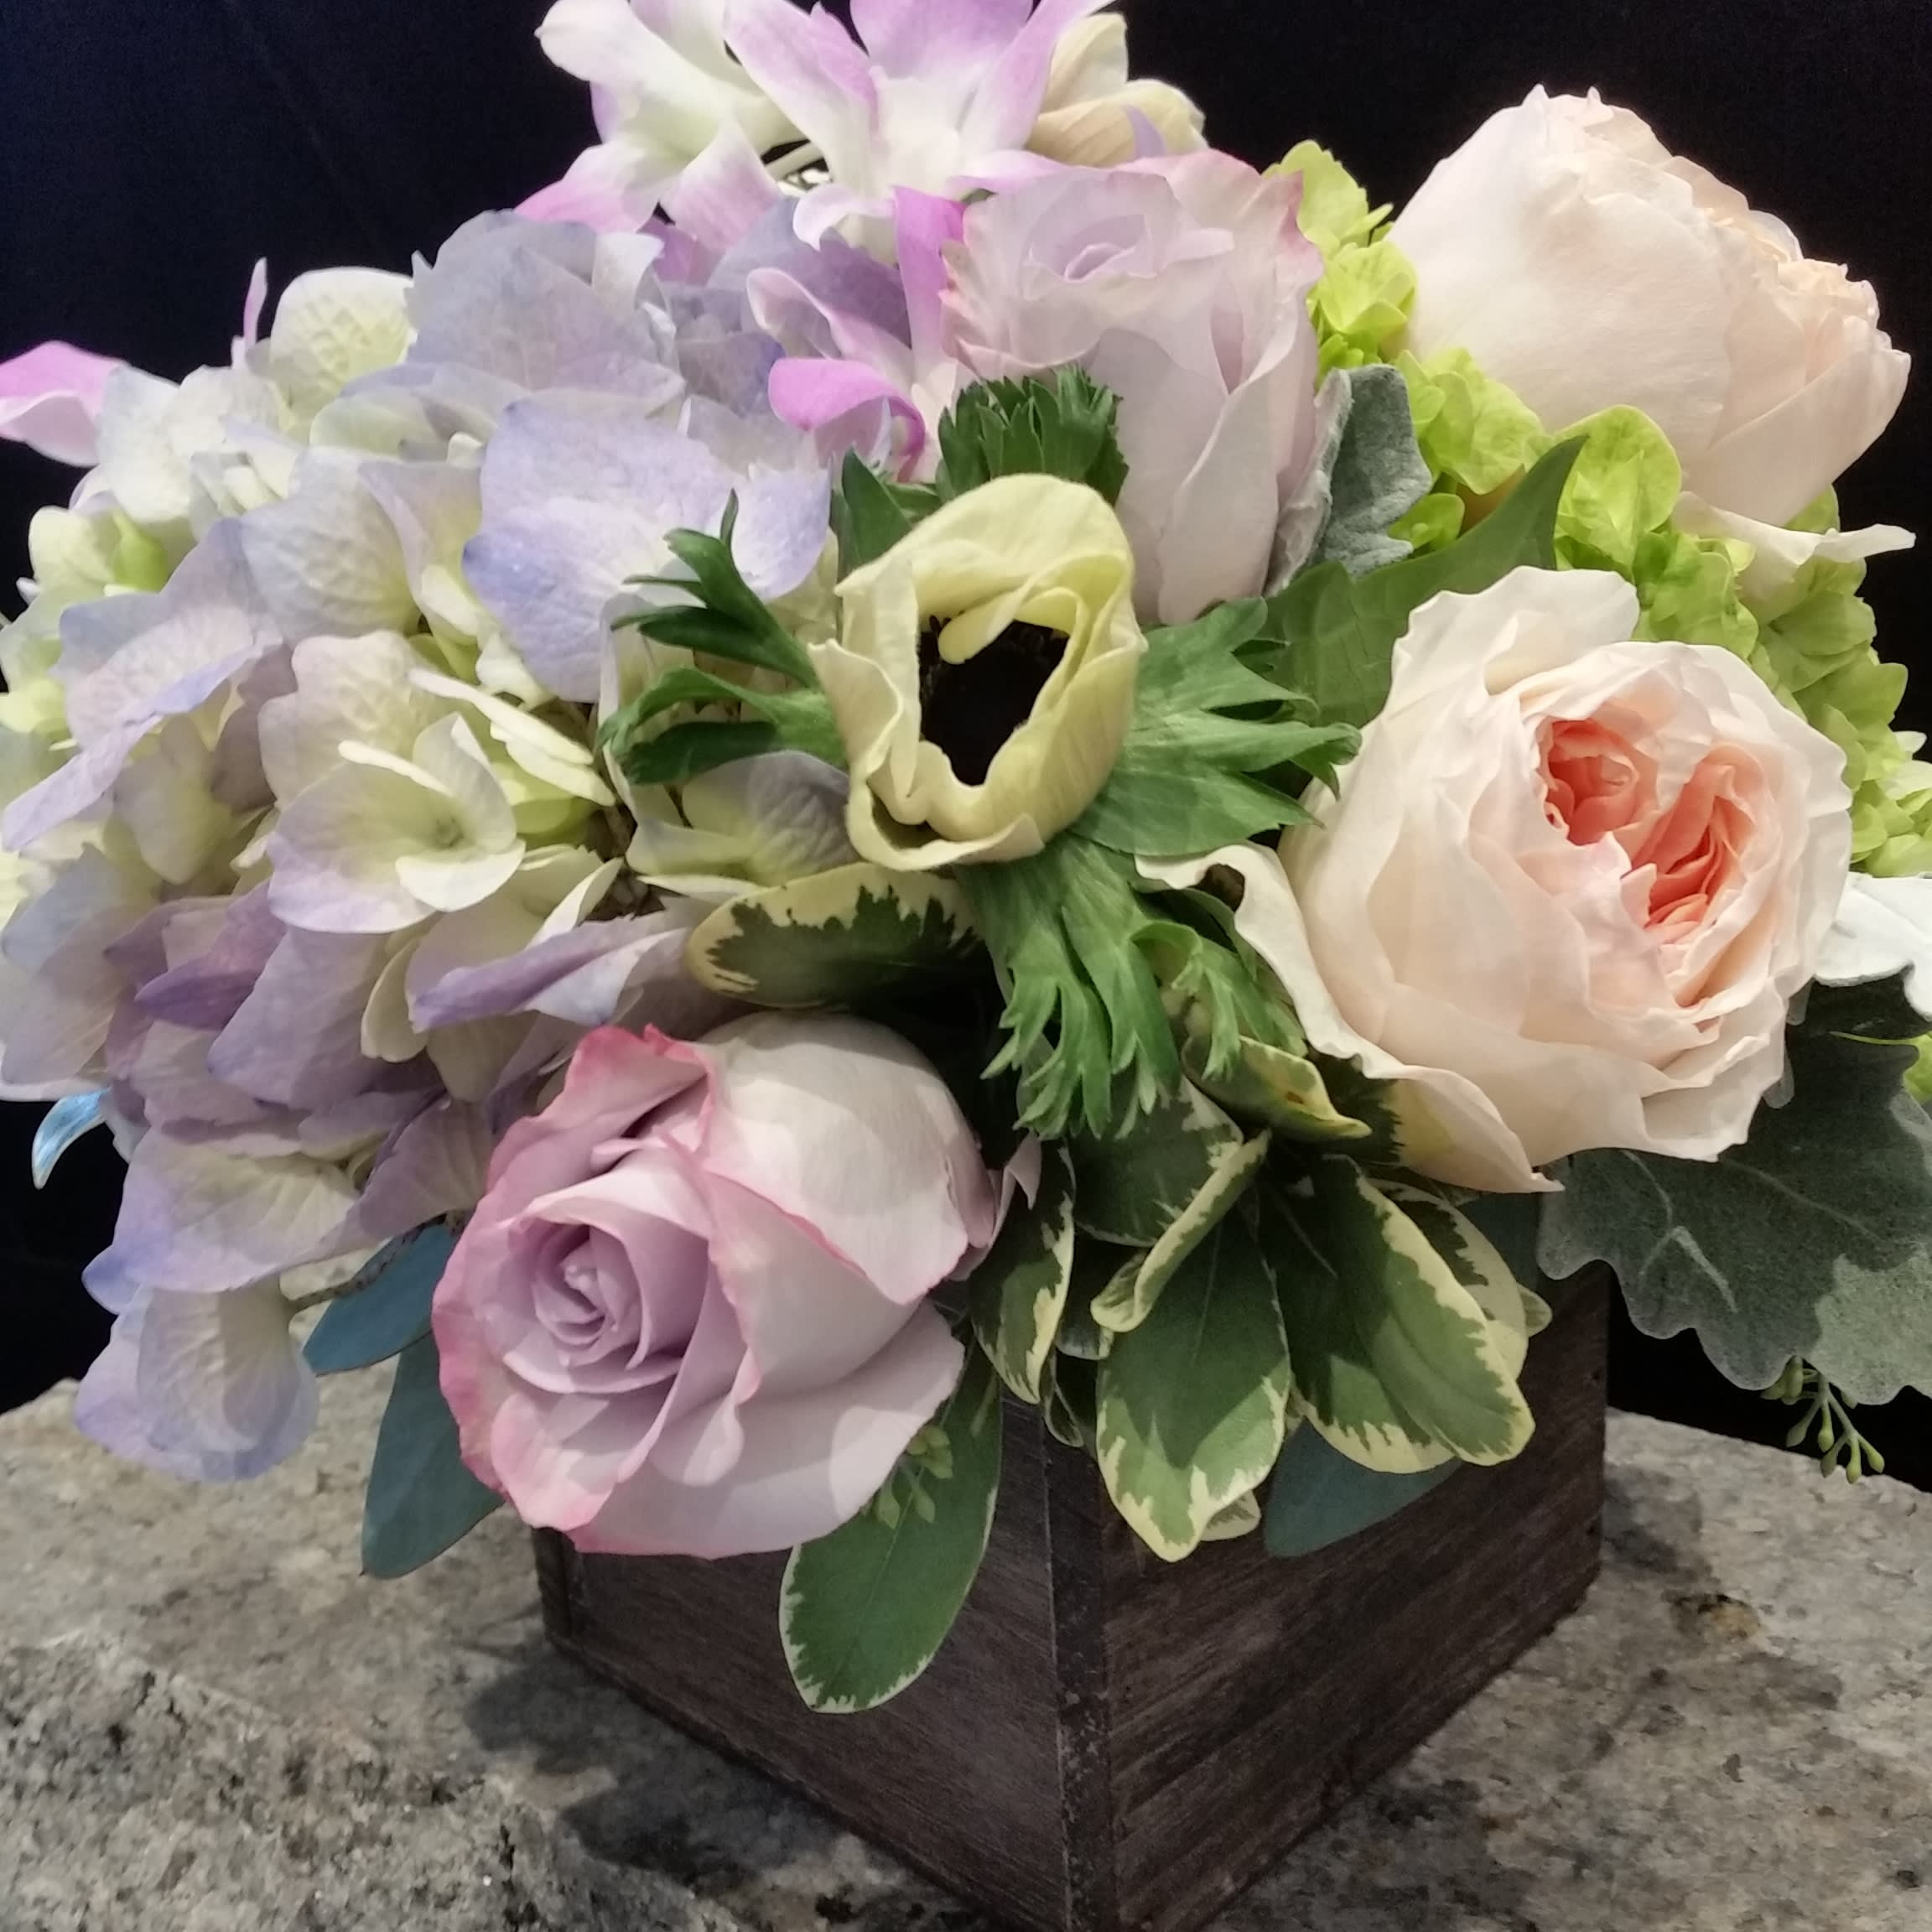 A Walk in the Woods - We have featured an enchanting mix of soft colors and natural flowers in a simple wooden cube for this arrangement called A Walk in the Woods.  'Natural' is in style. A simple wooden cube contains lavender and cream hydrangea, premium lavender and peach roses, stunning peach garden roses, and white anemone. Uncomplicated and so very pretty!